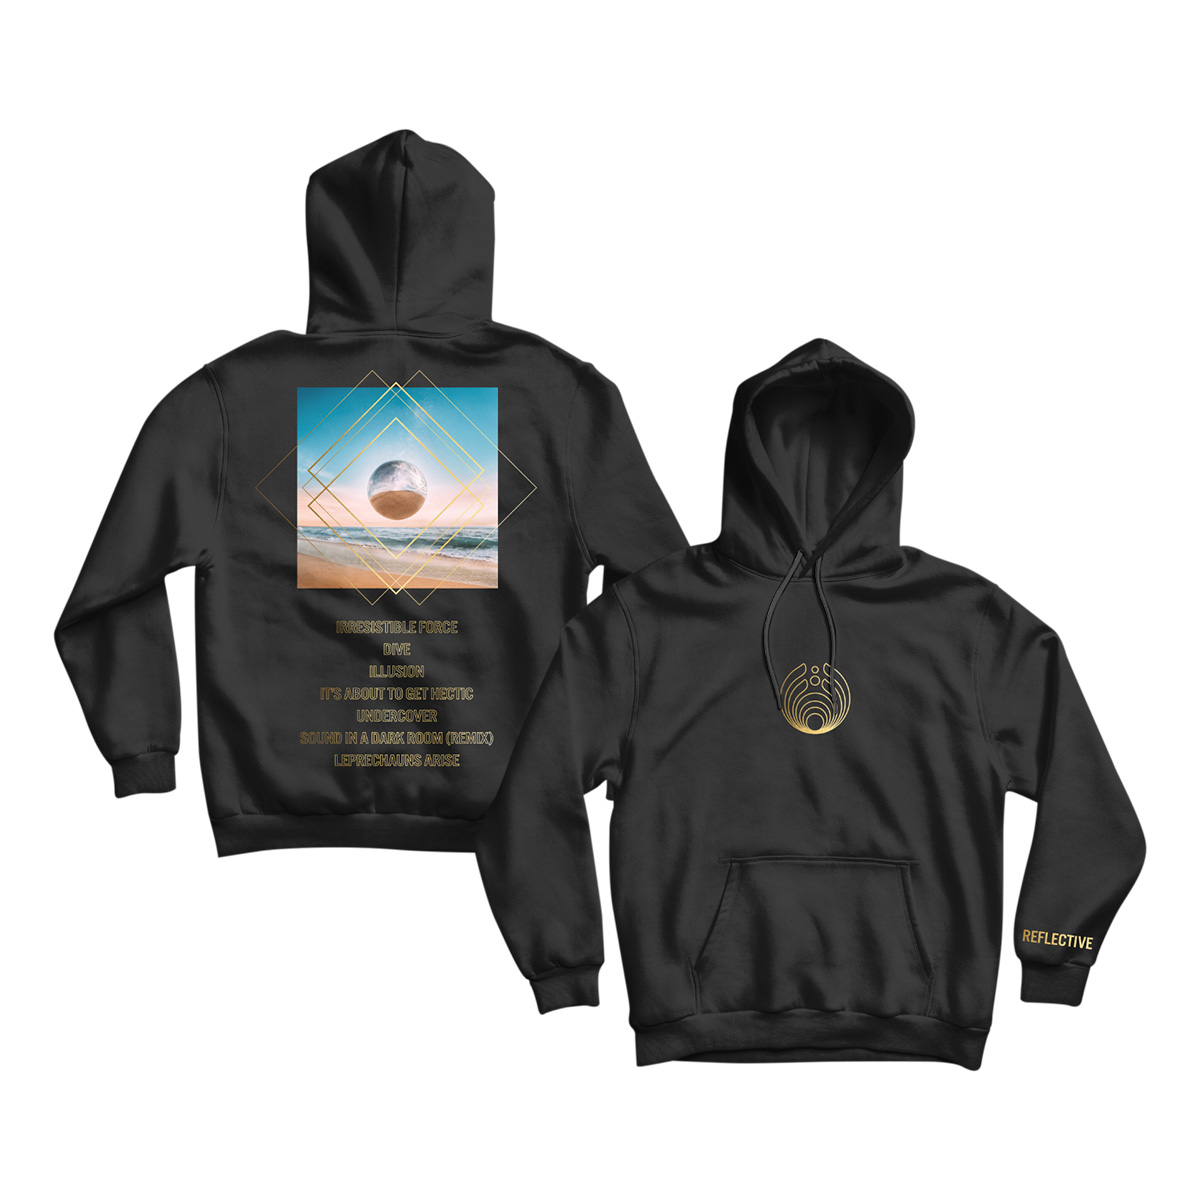 Reflective Part 4 Hoodie Bundle